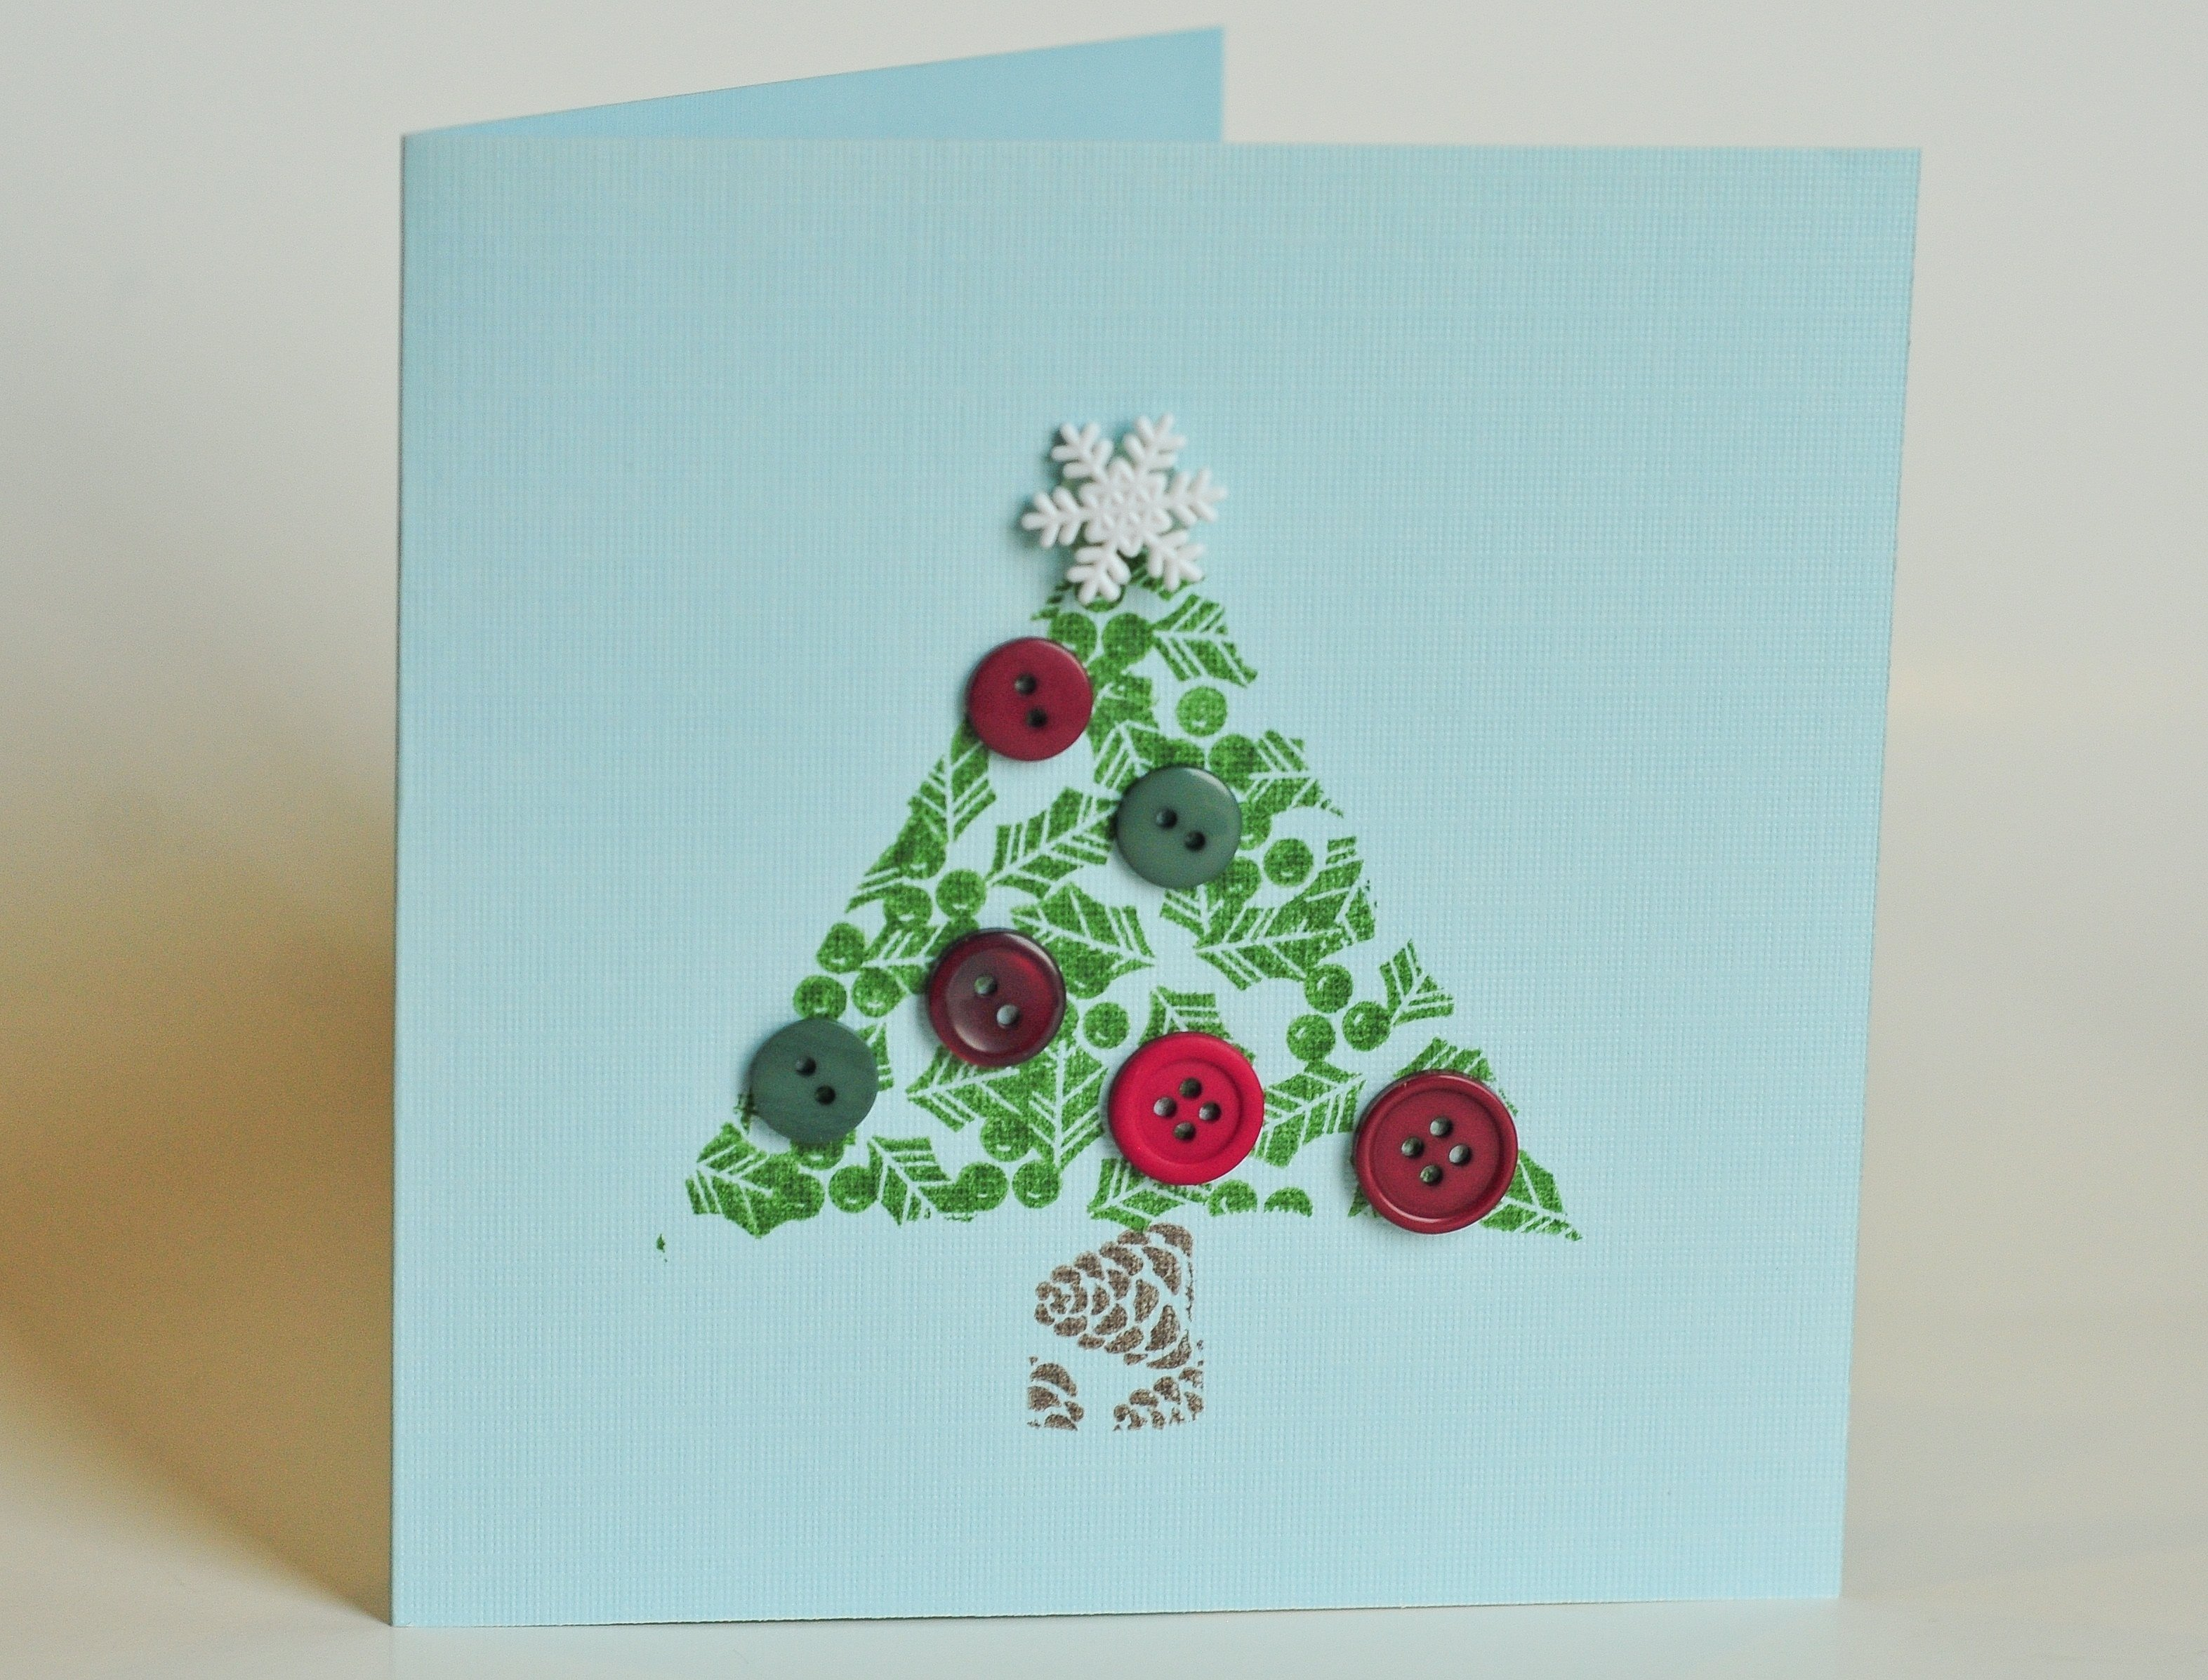 10 Attractive Christmas Card Ideas For Kids christmas cards make ideas children yuyellowpages tierra este 25710 2 2021